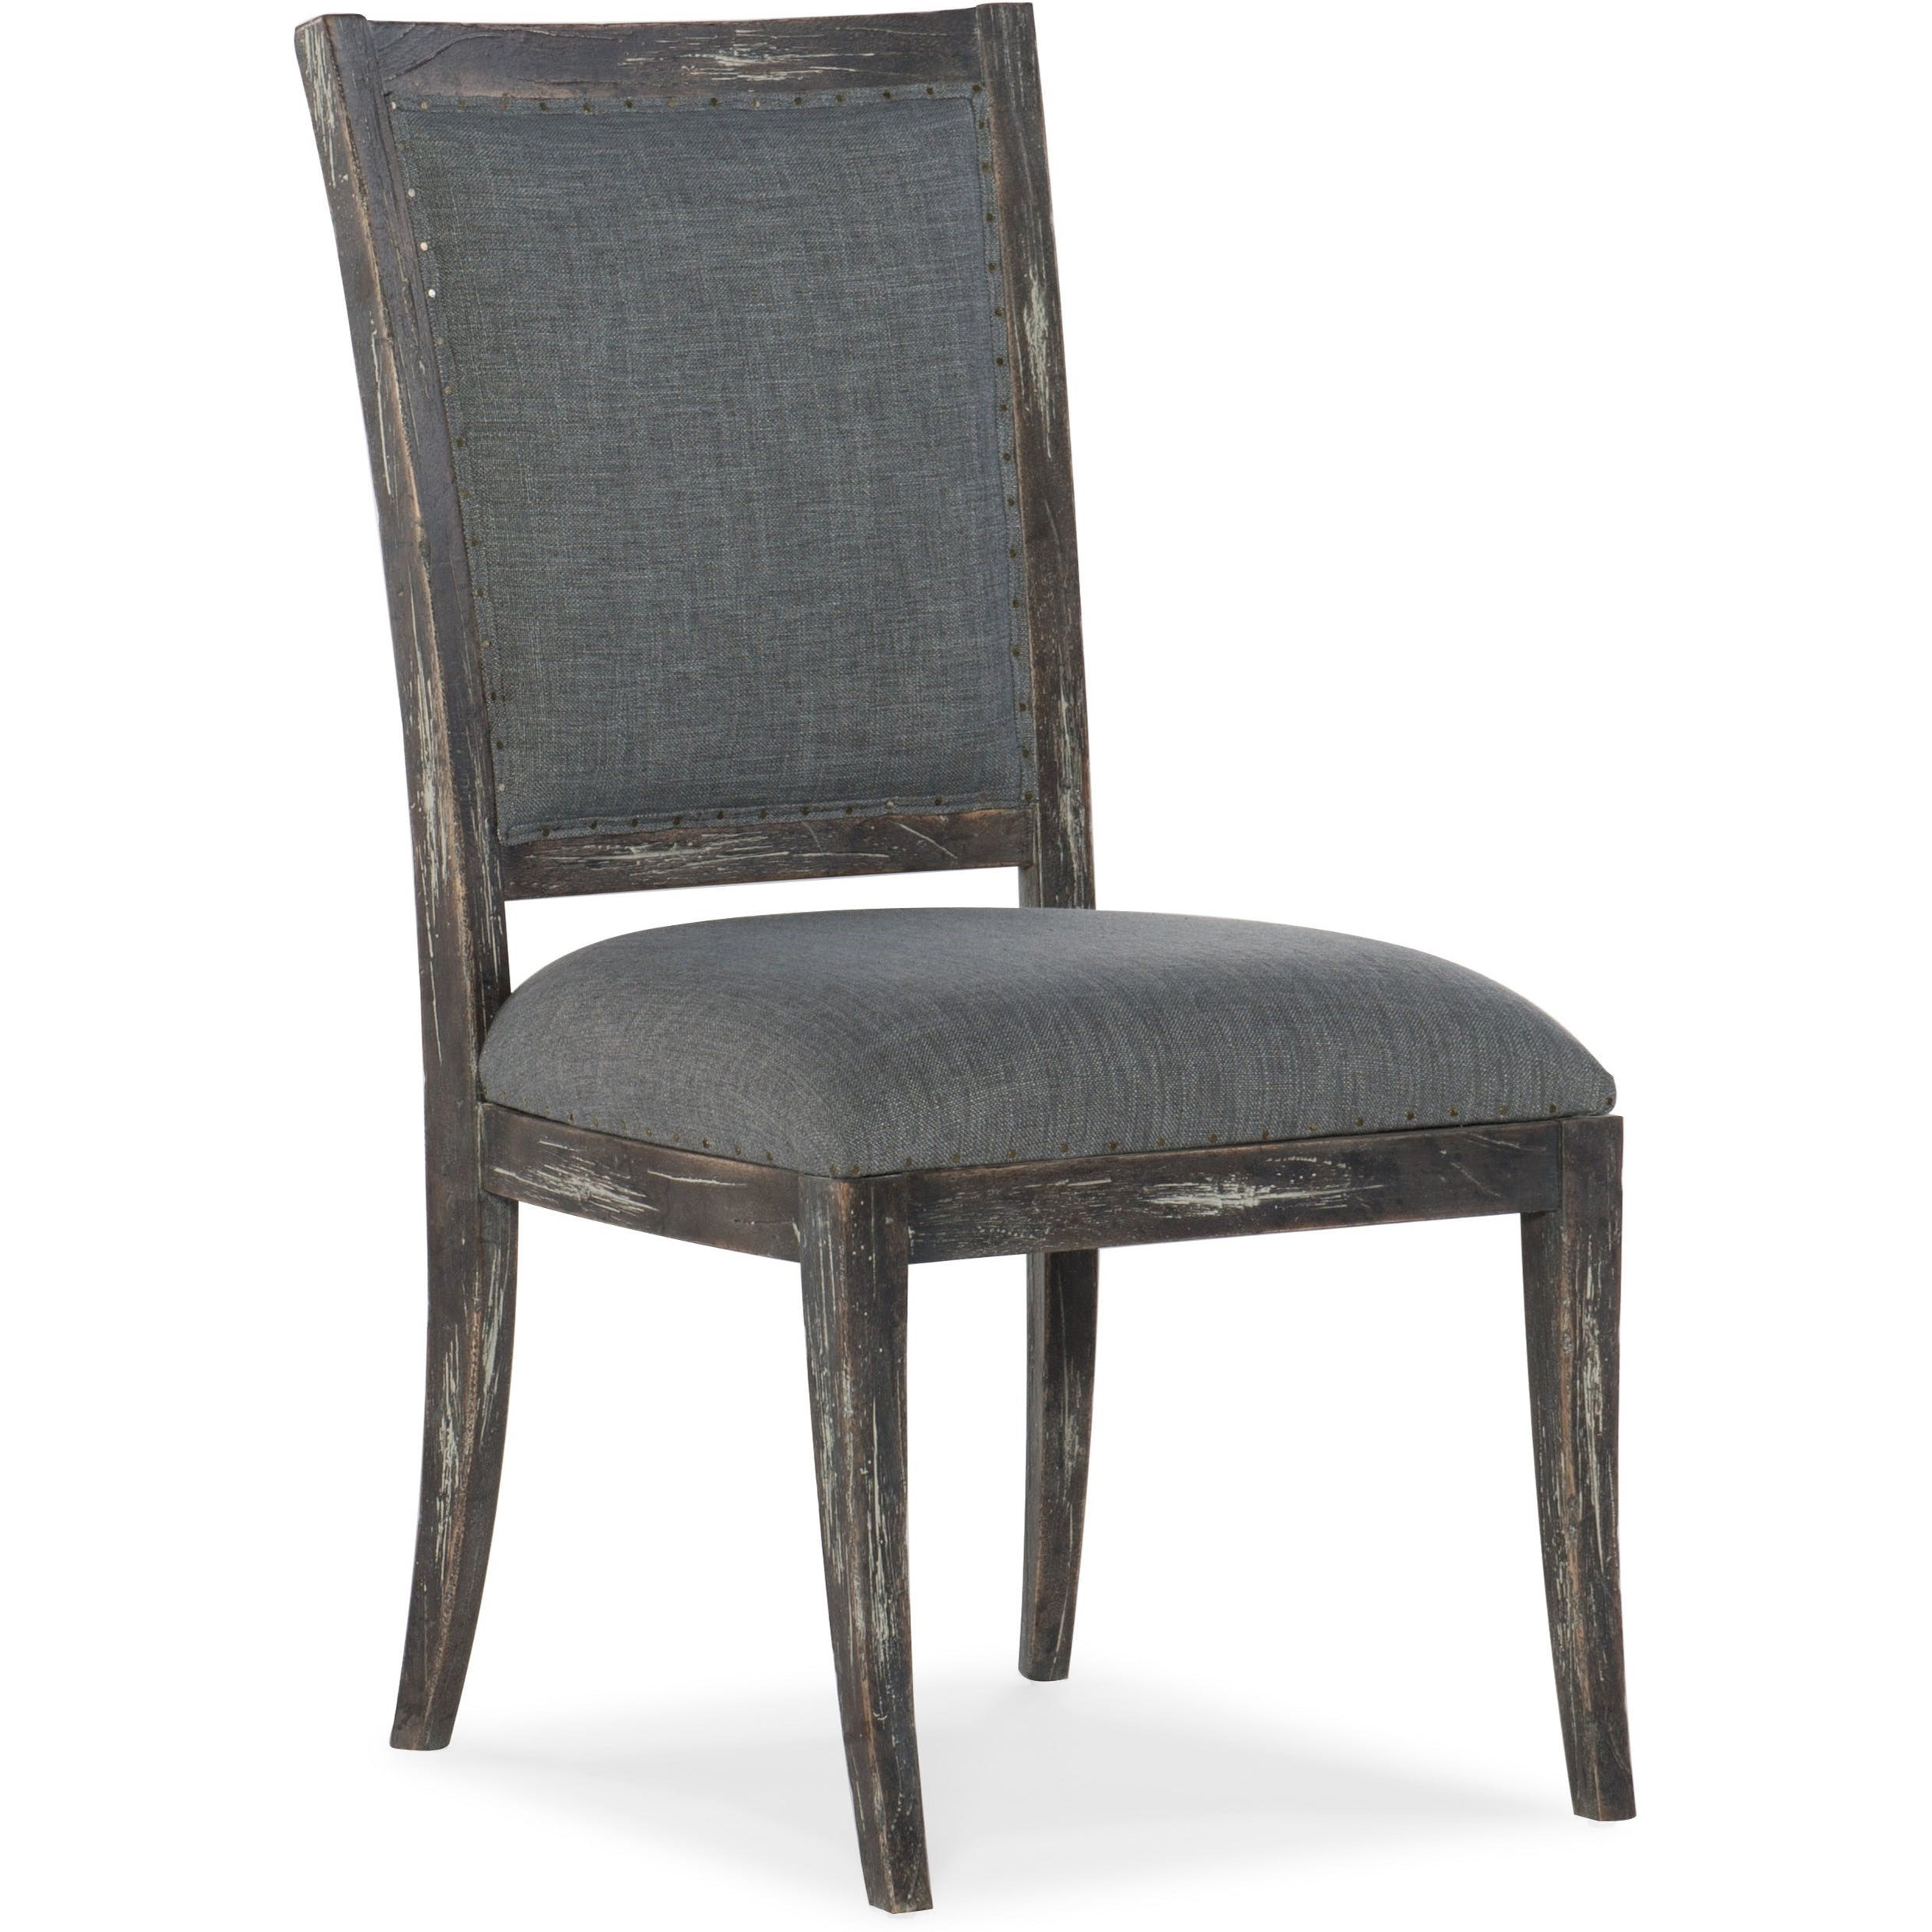 Beaumont Upholstered Side Chair by Hooker Furniture at Alison Craig Home Furnishings